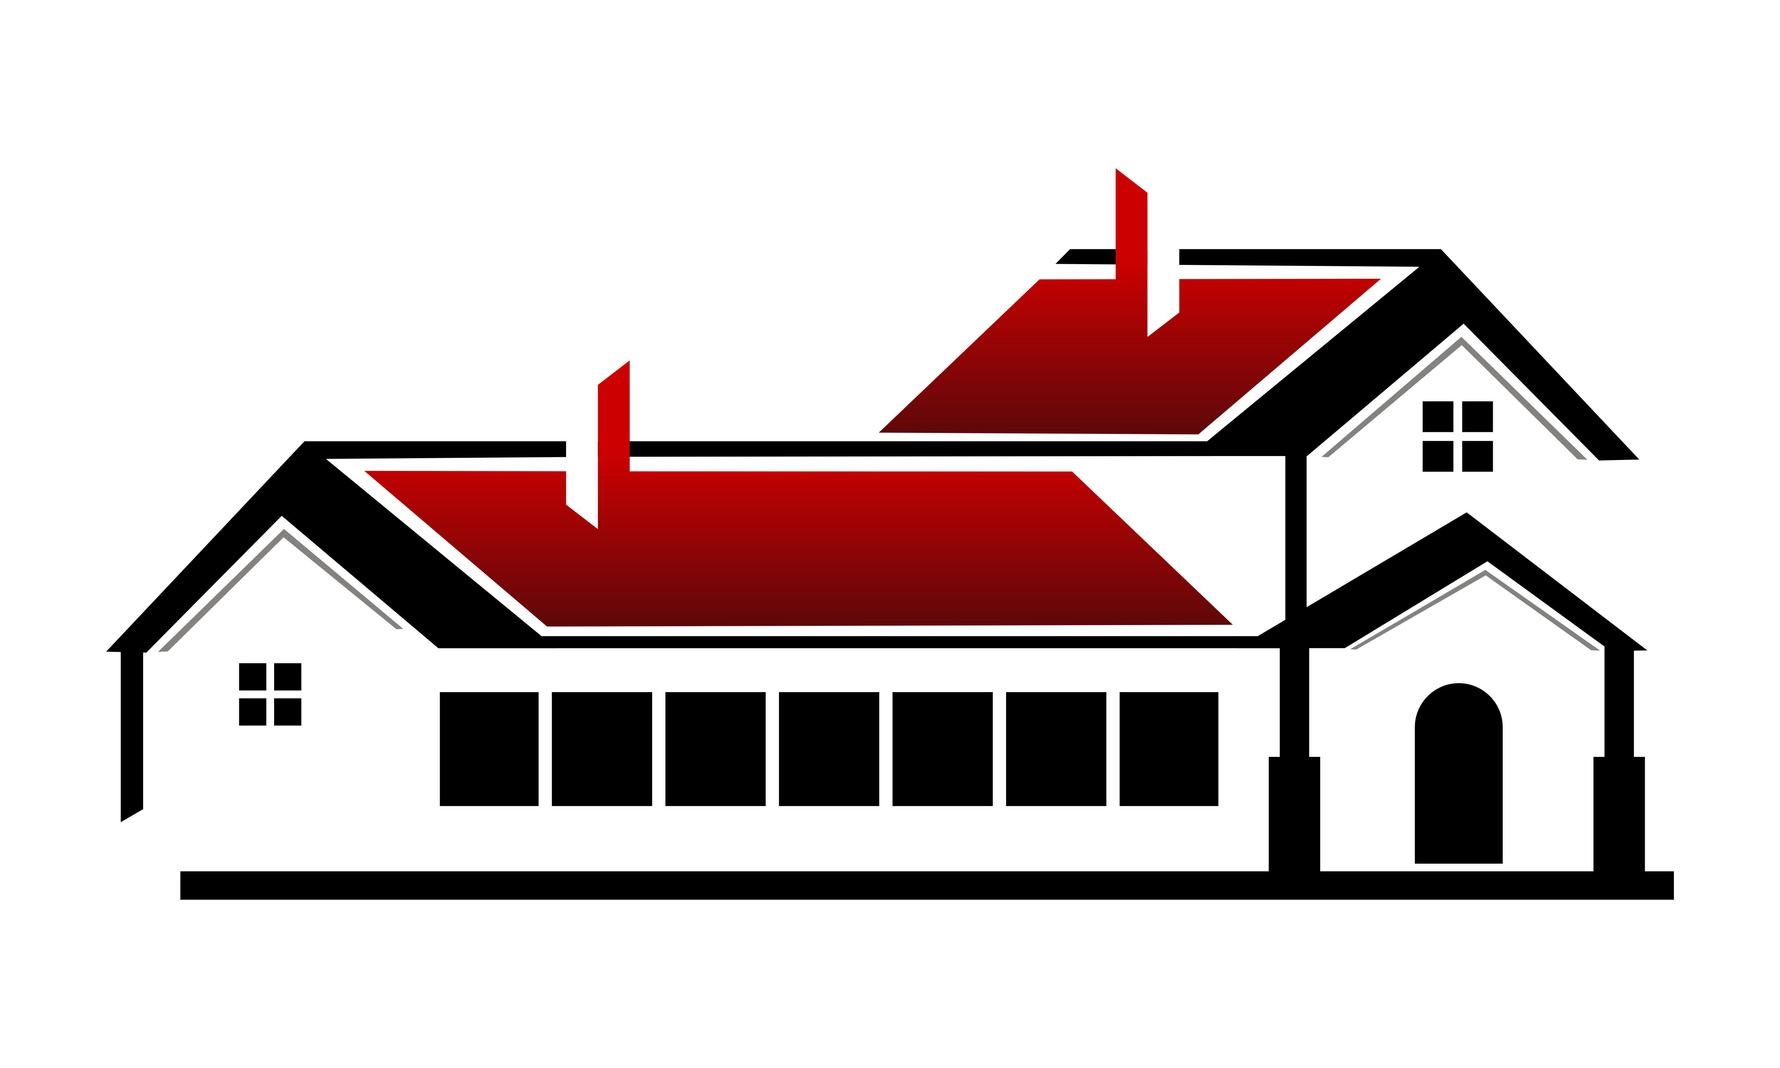 5 Ways to Include Hidden Symbolism in Roofing Logos • Online.